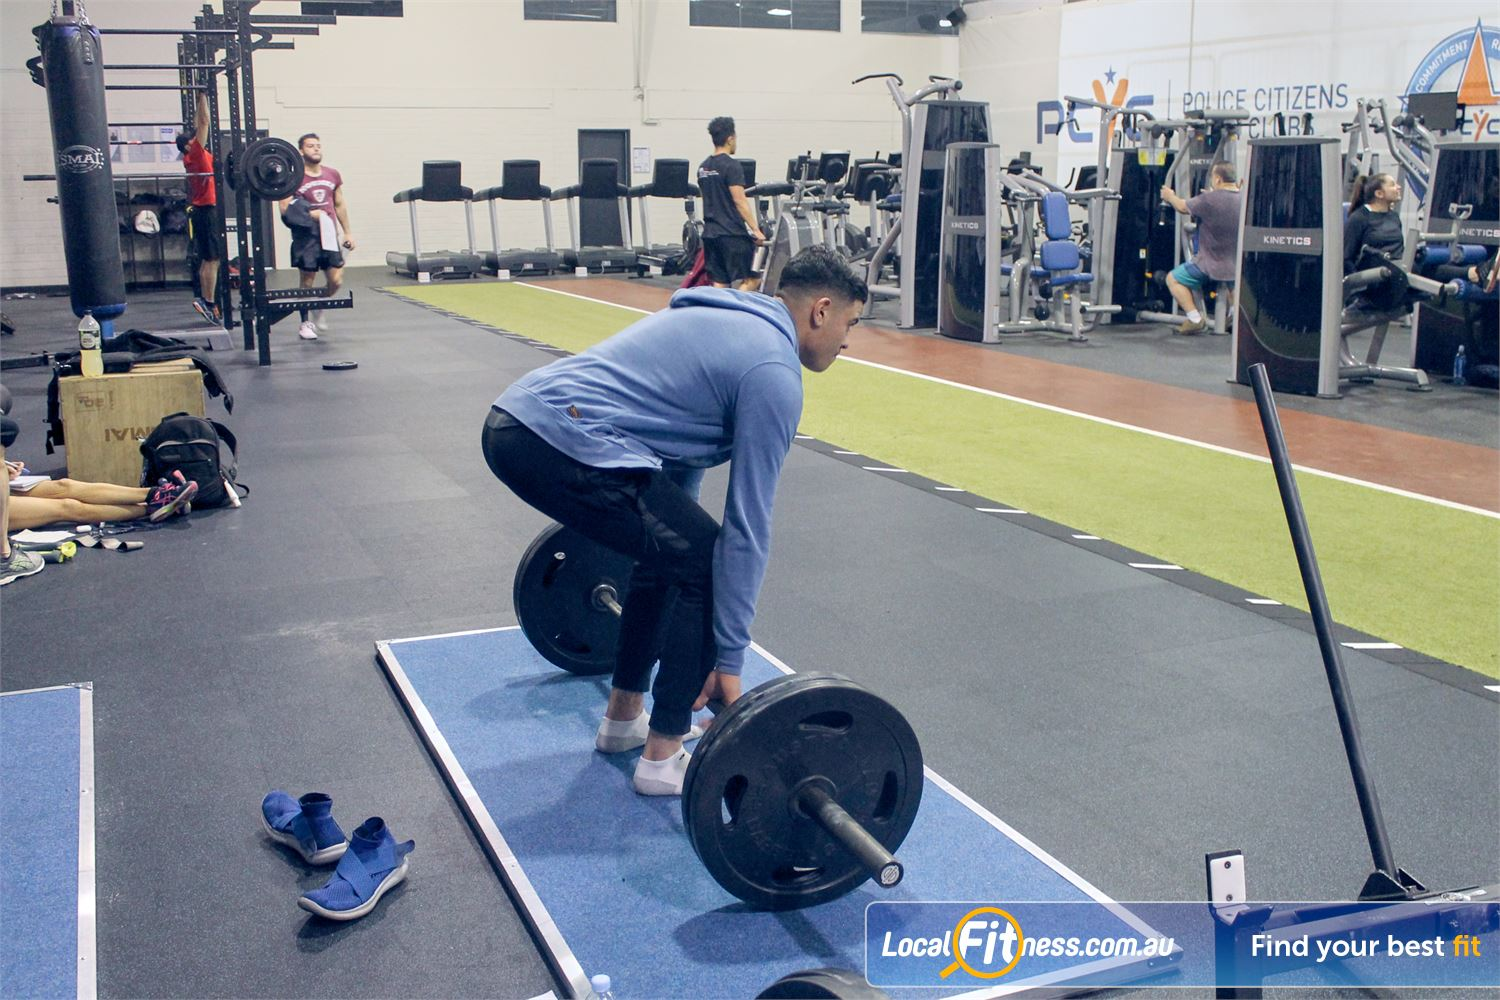 PCYC Auburn Lidcombe Multiple lifting platforms perfect for deadlifting.